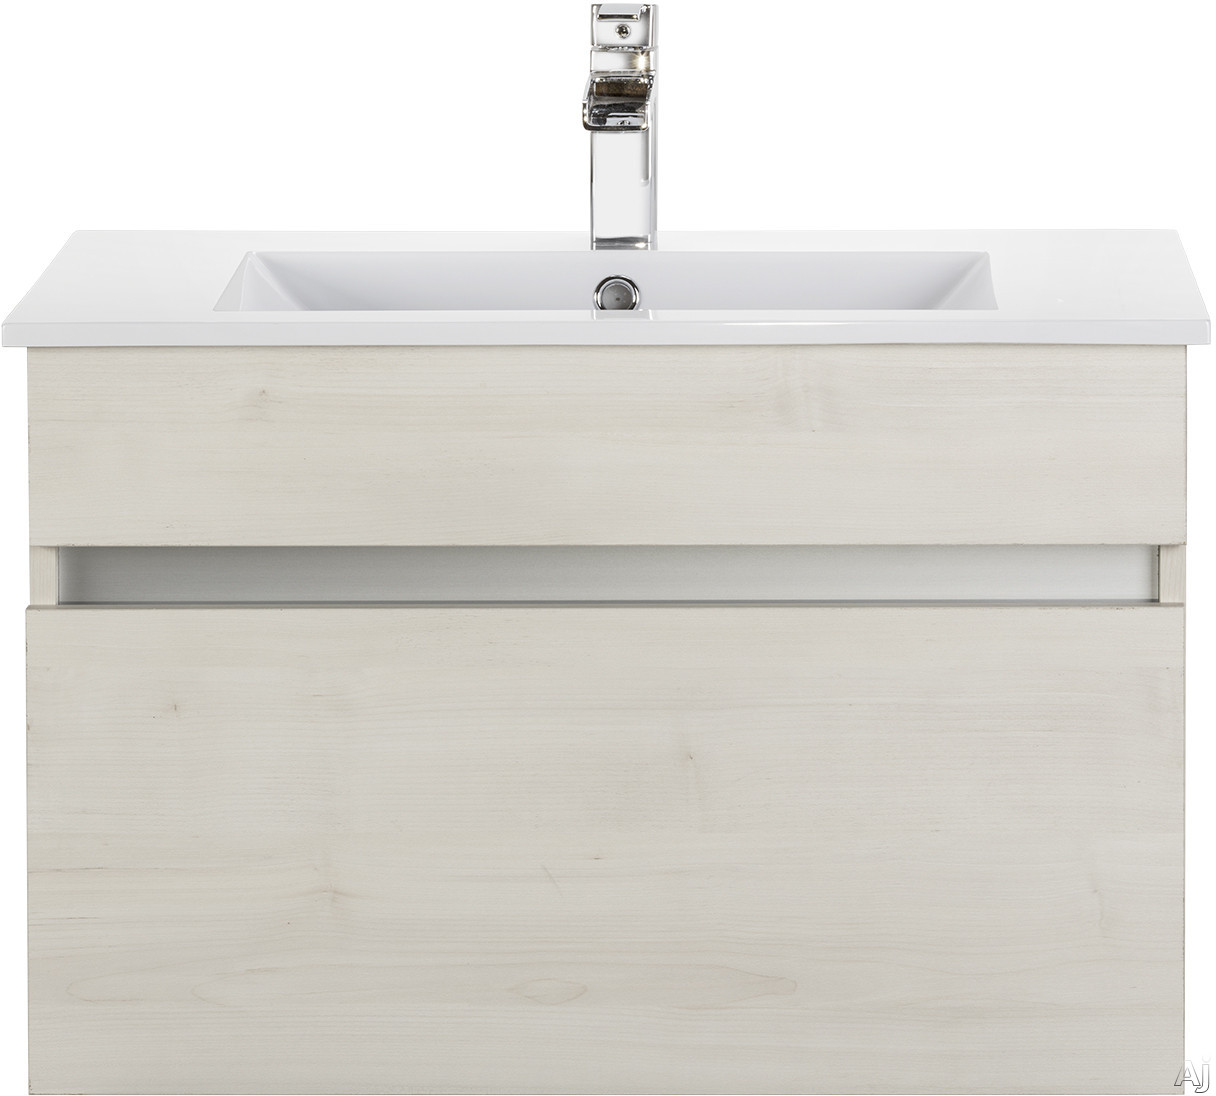 Cutler Kitchen & Bath Ivory FVCHFH30 30 Inch Wall Mount Bathroom Vanity with 1 Soft Close Drawer, Countertop and Sink and European Soft-Close Hardware: Fogo Harbor